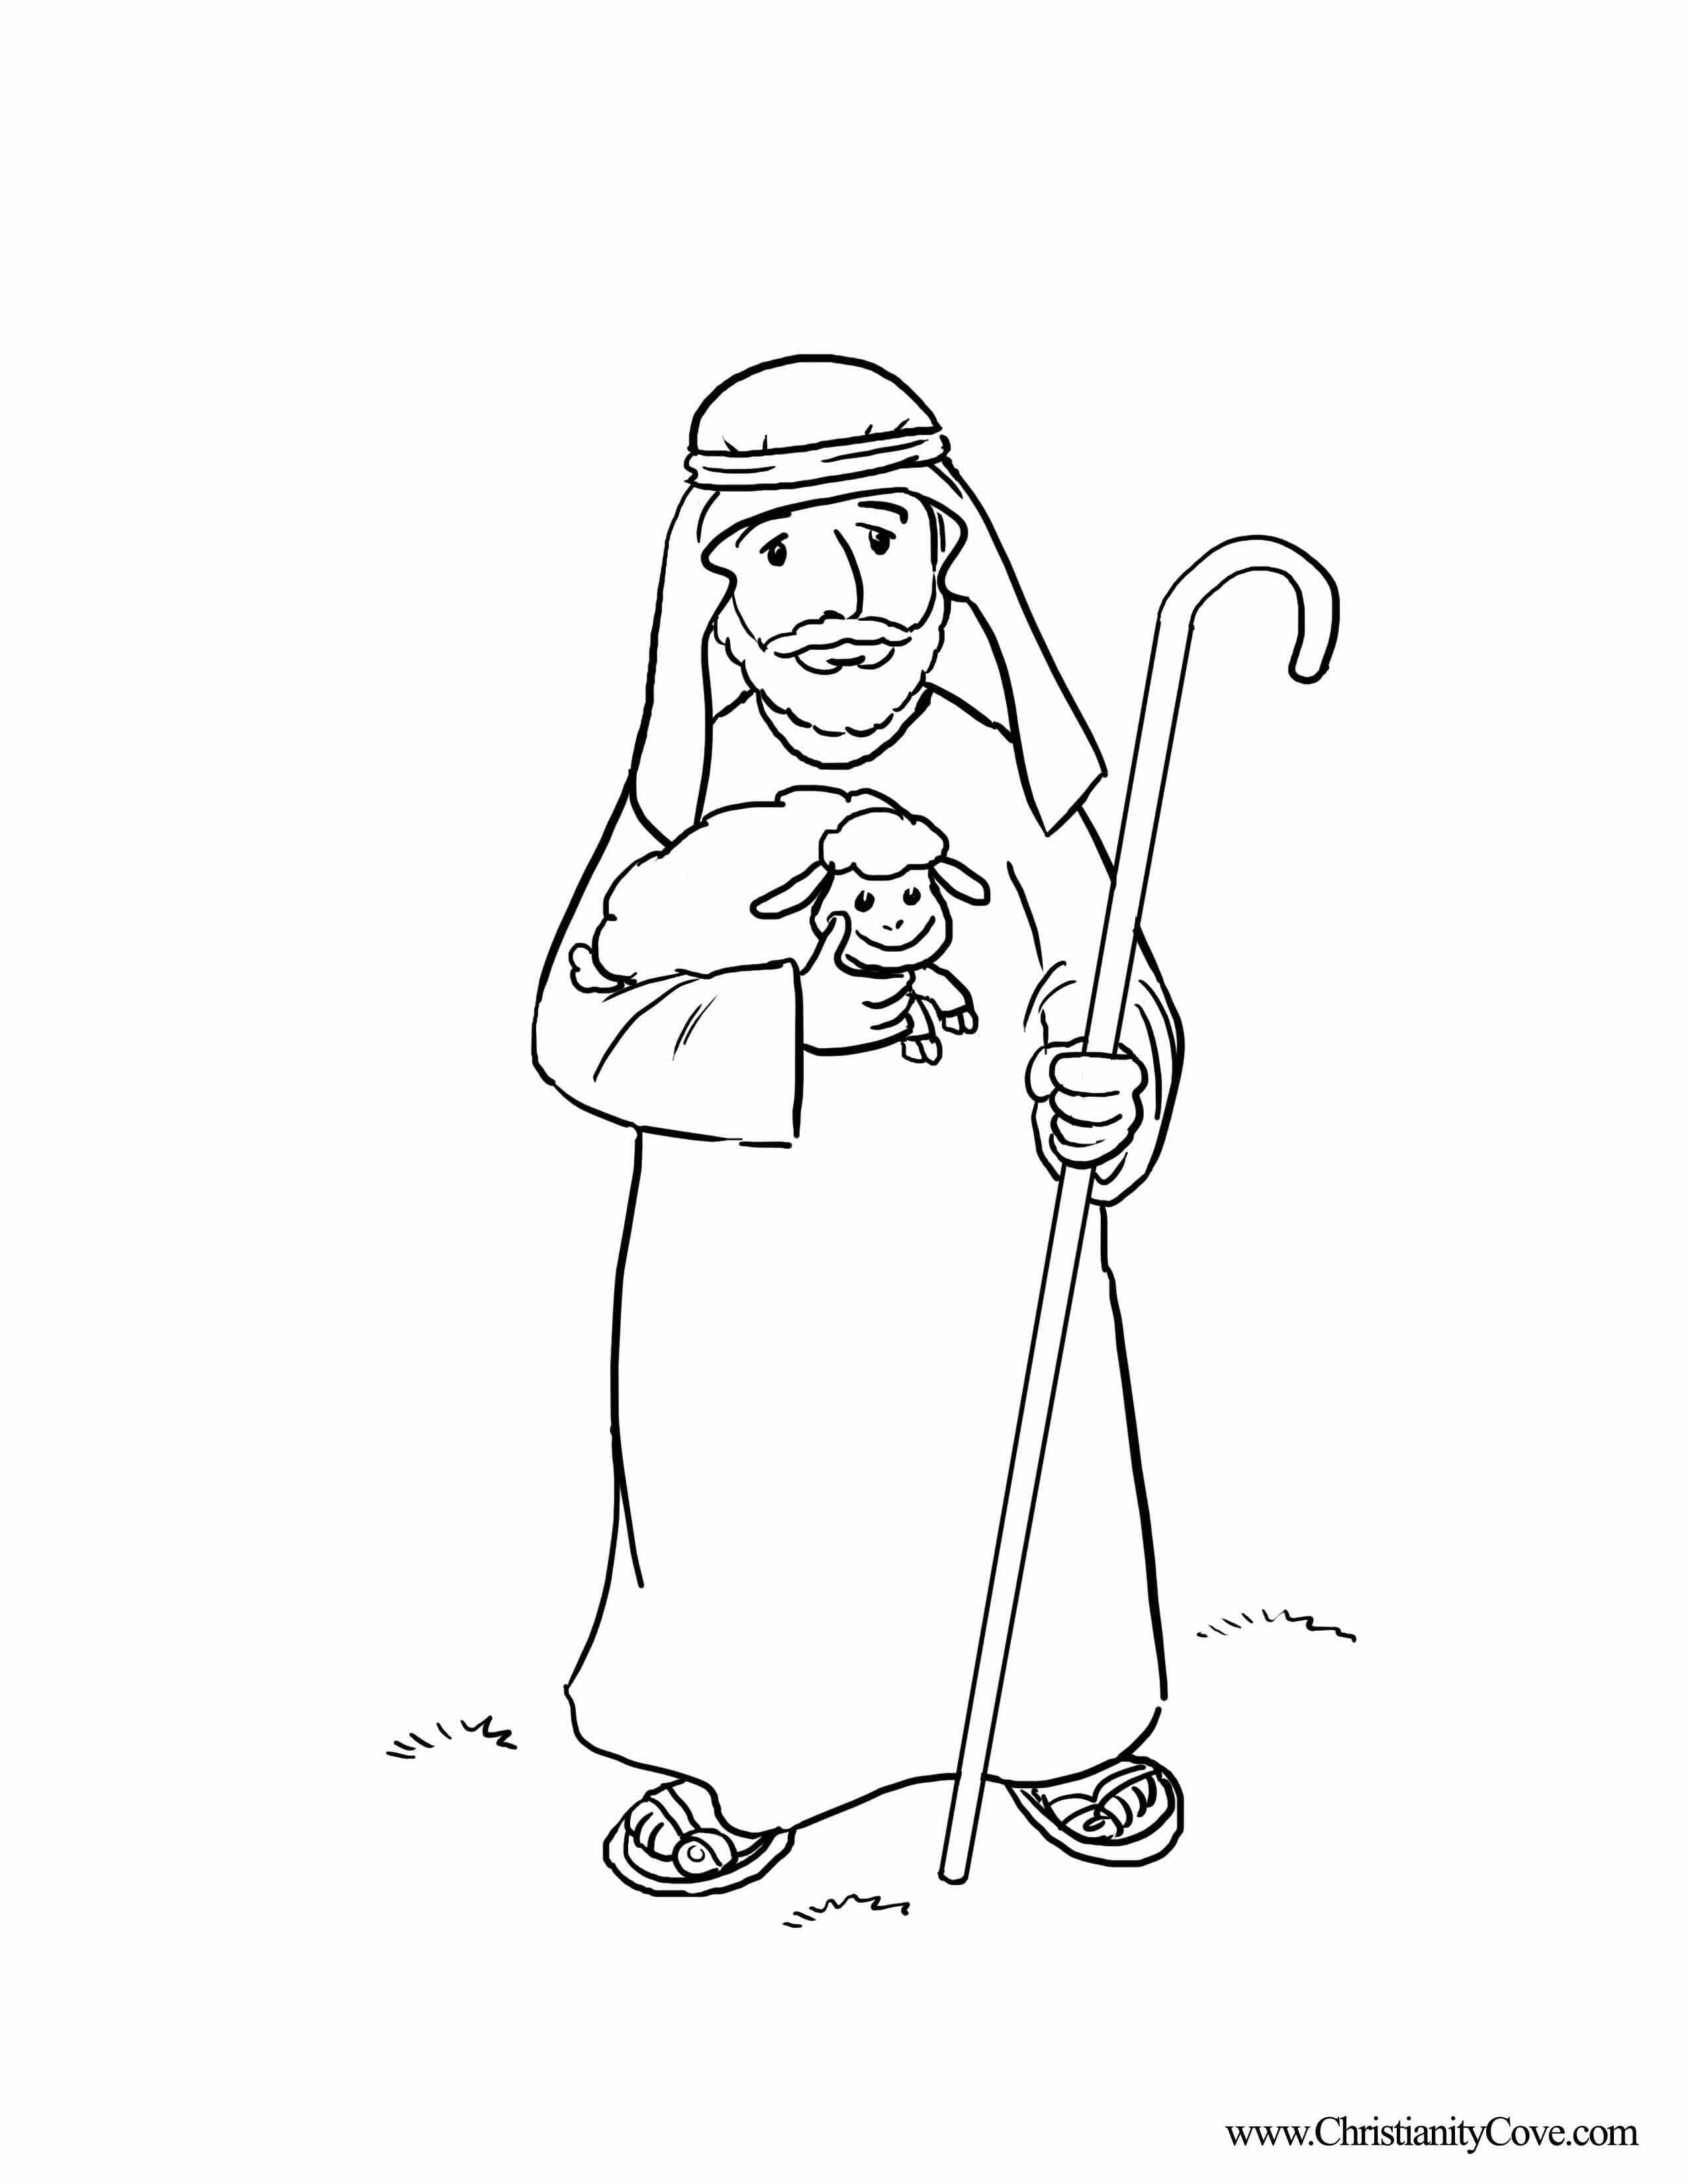 free printable bible coloring pages sunday school free printable coloring pages coloring home free printable coloring bible pages